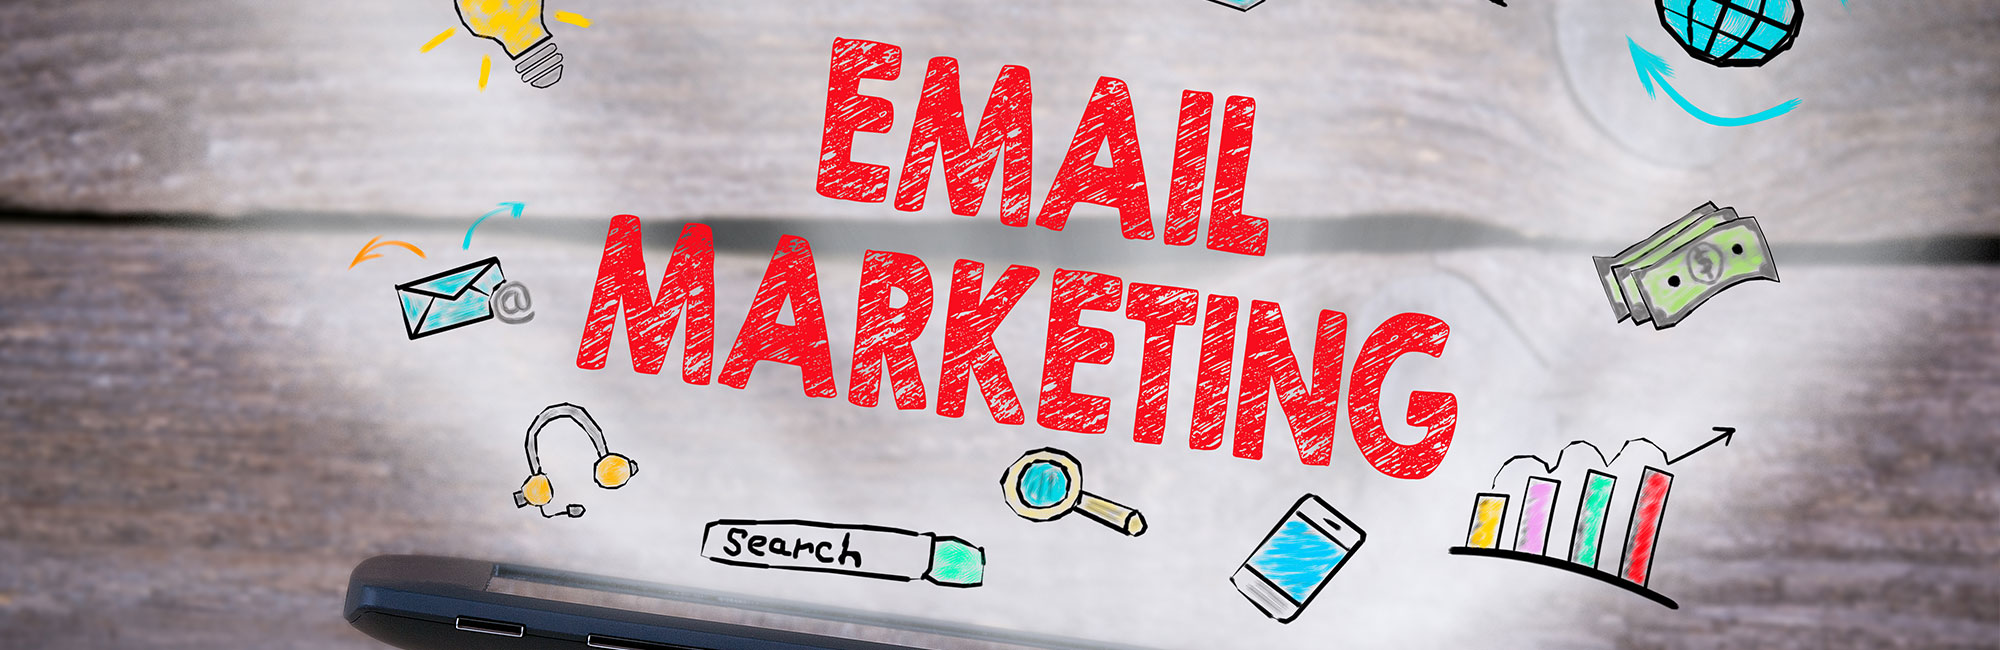 How to increase conversions for email marketing campaigns?